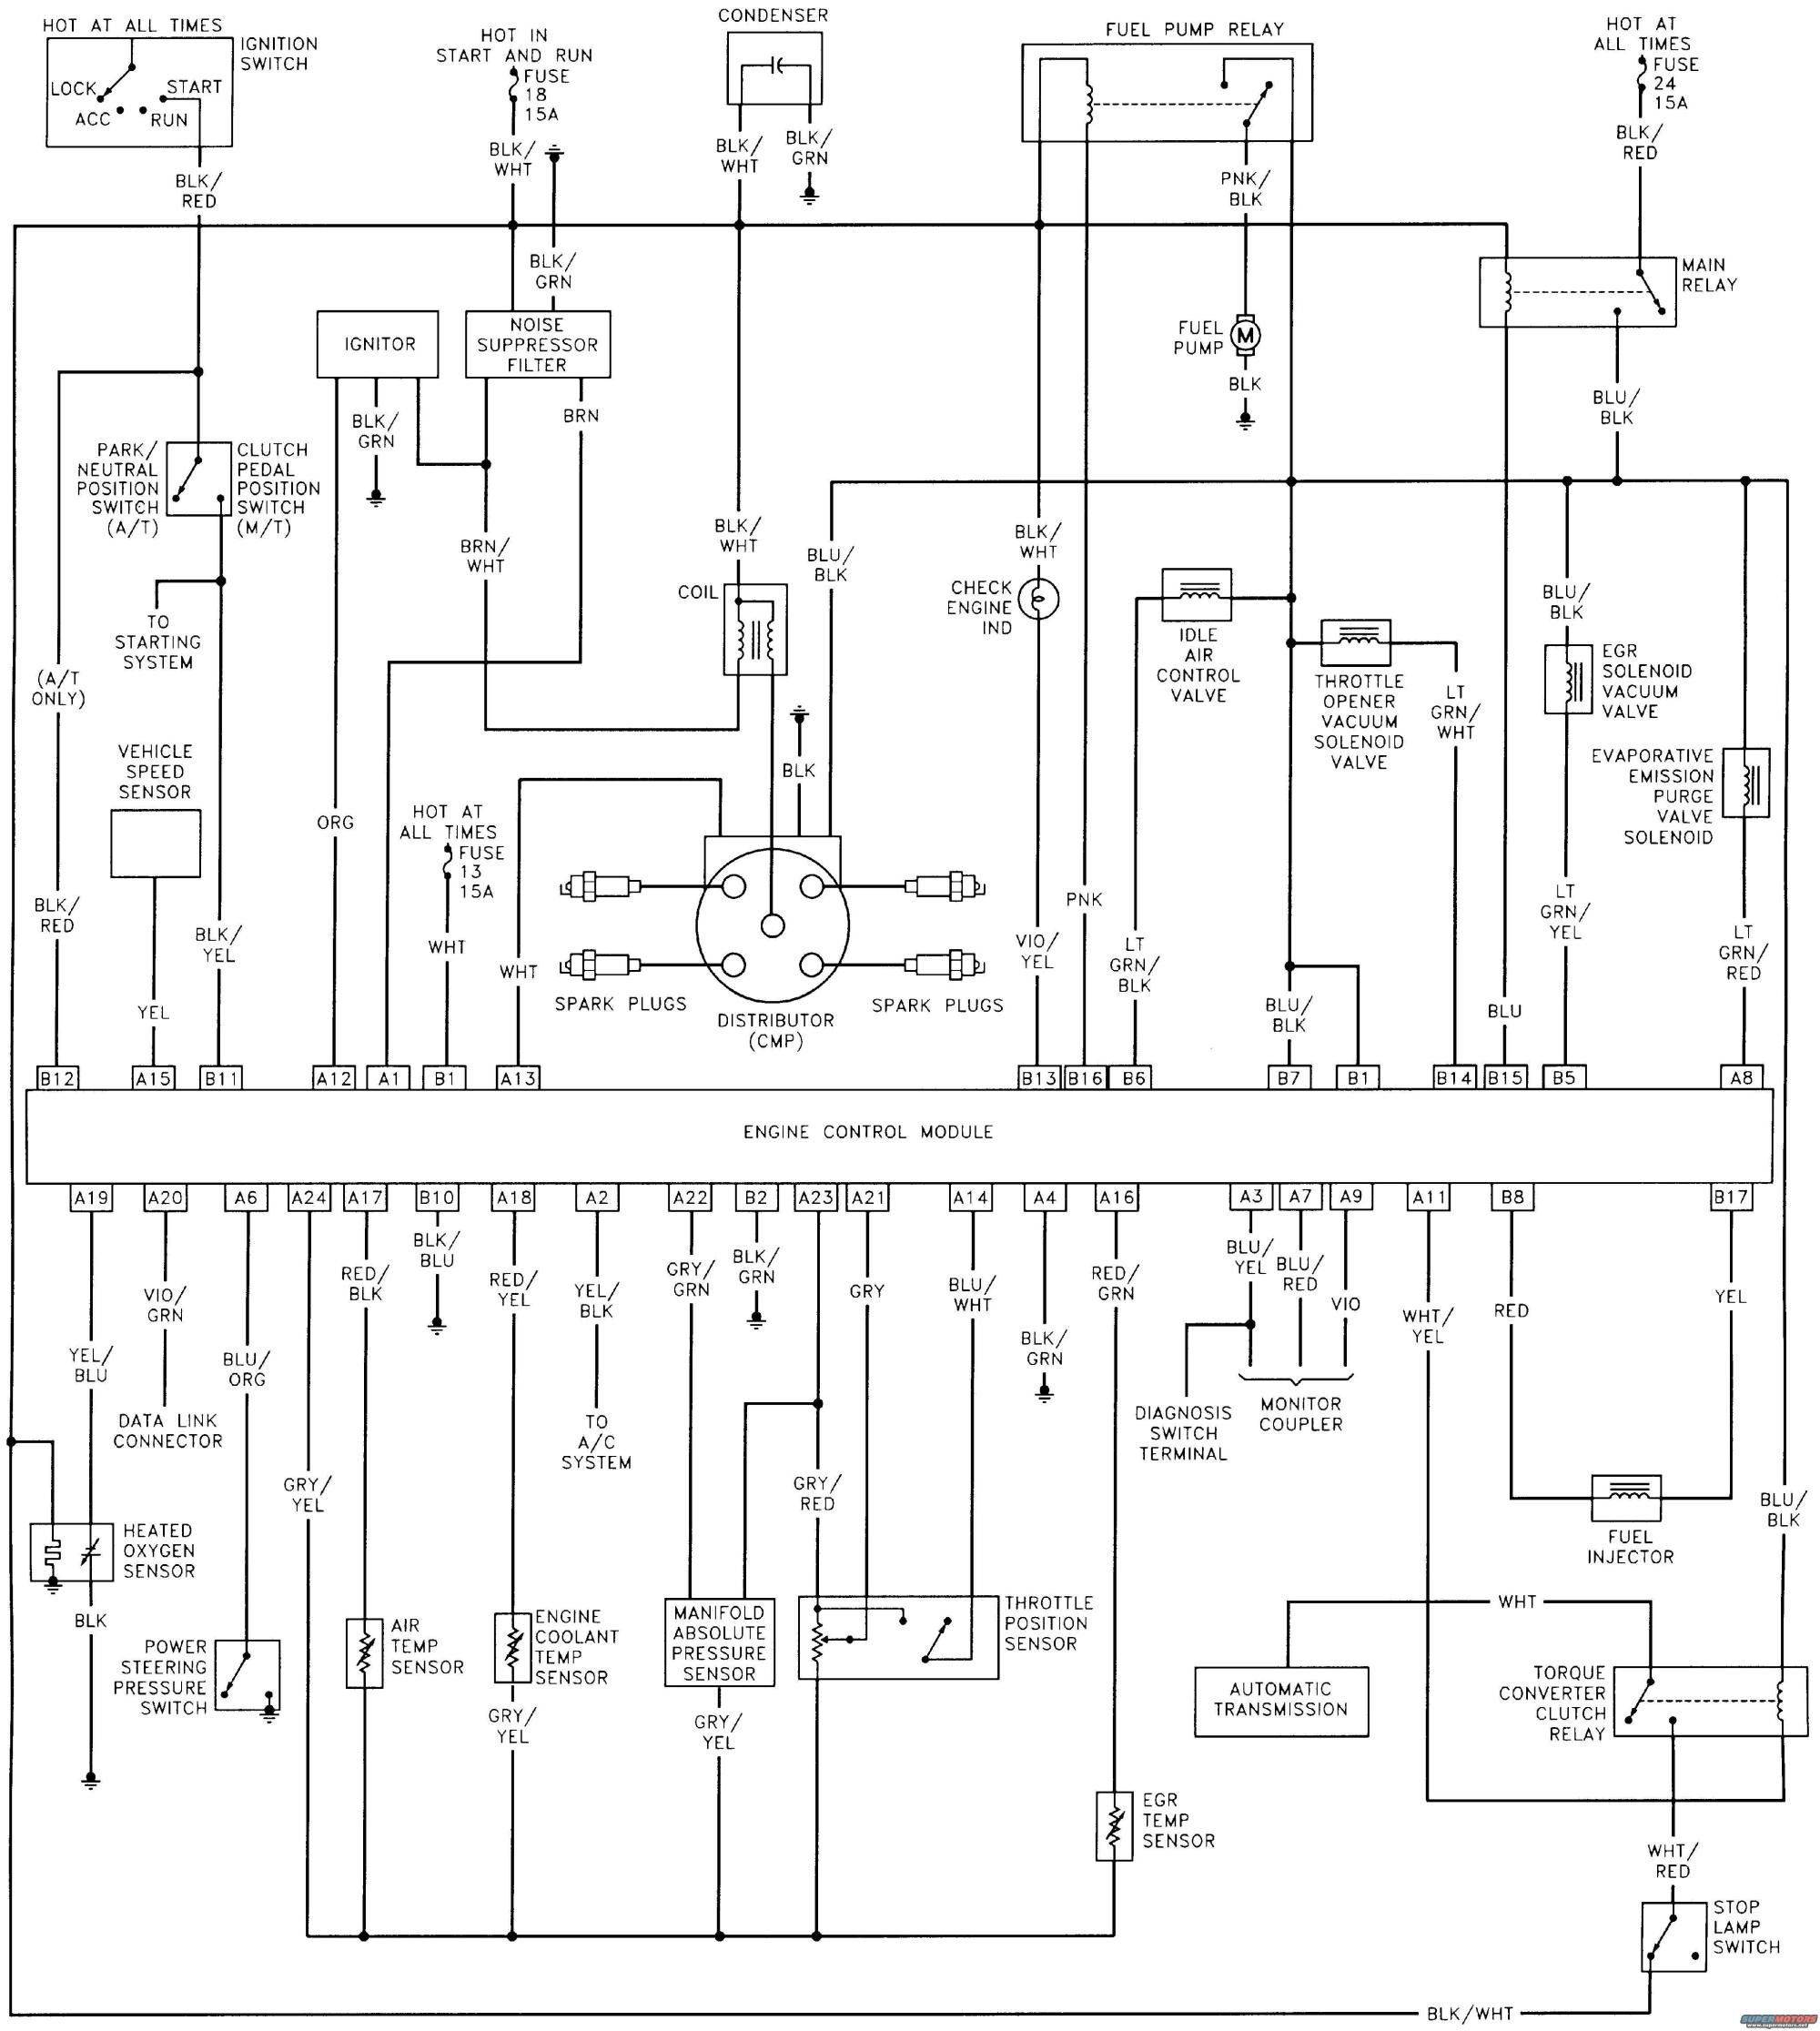 hight resolution of suzuki sidekick fuse diagram wiring diagram info 87 suzuki samurai wiring diagram